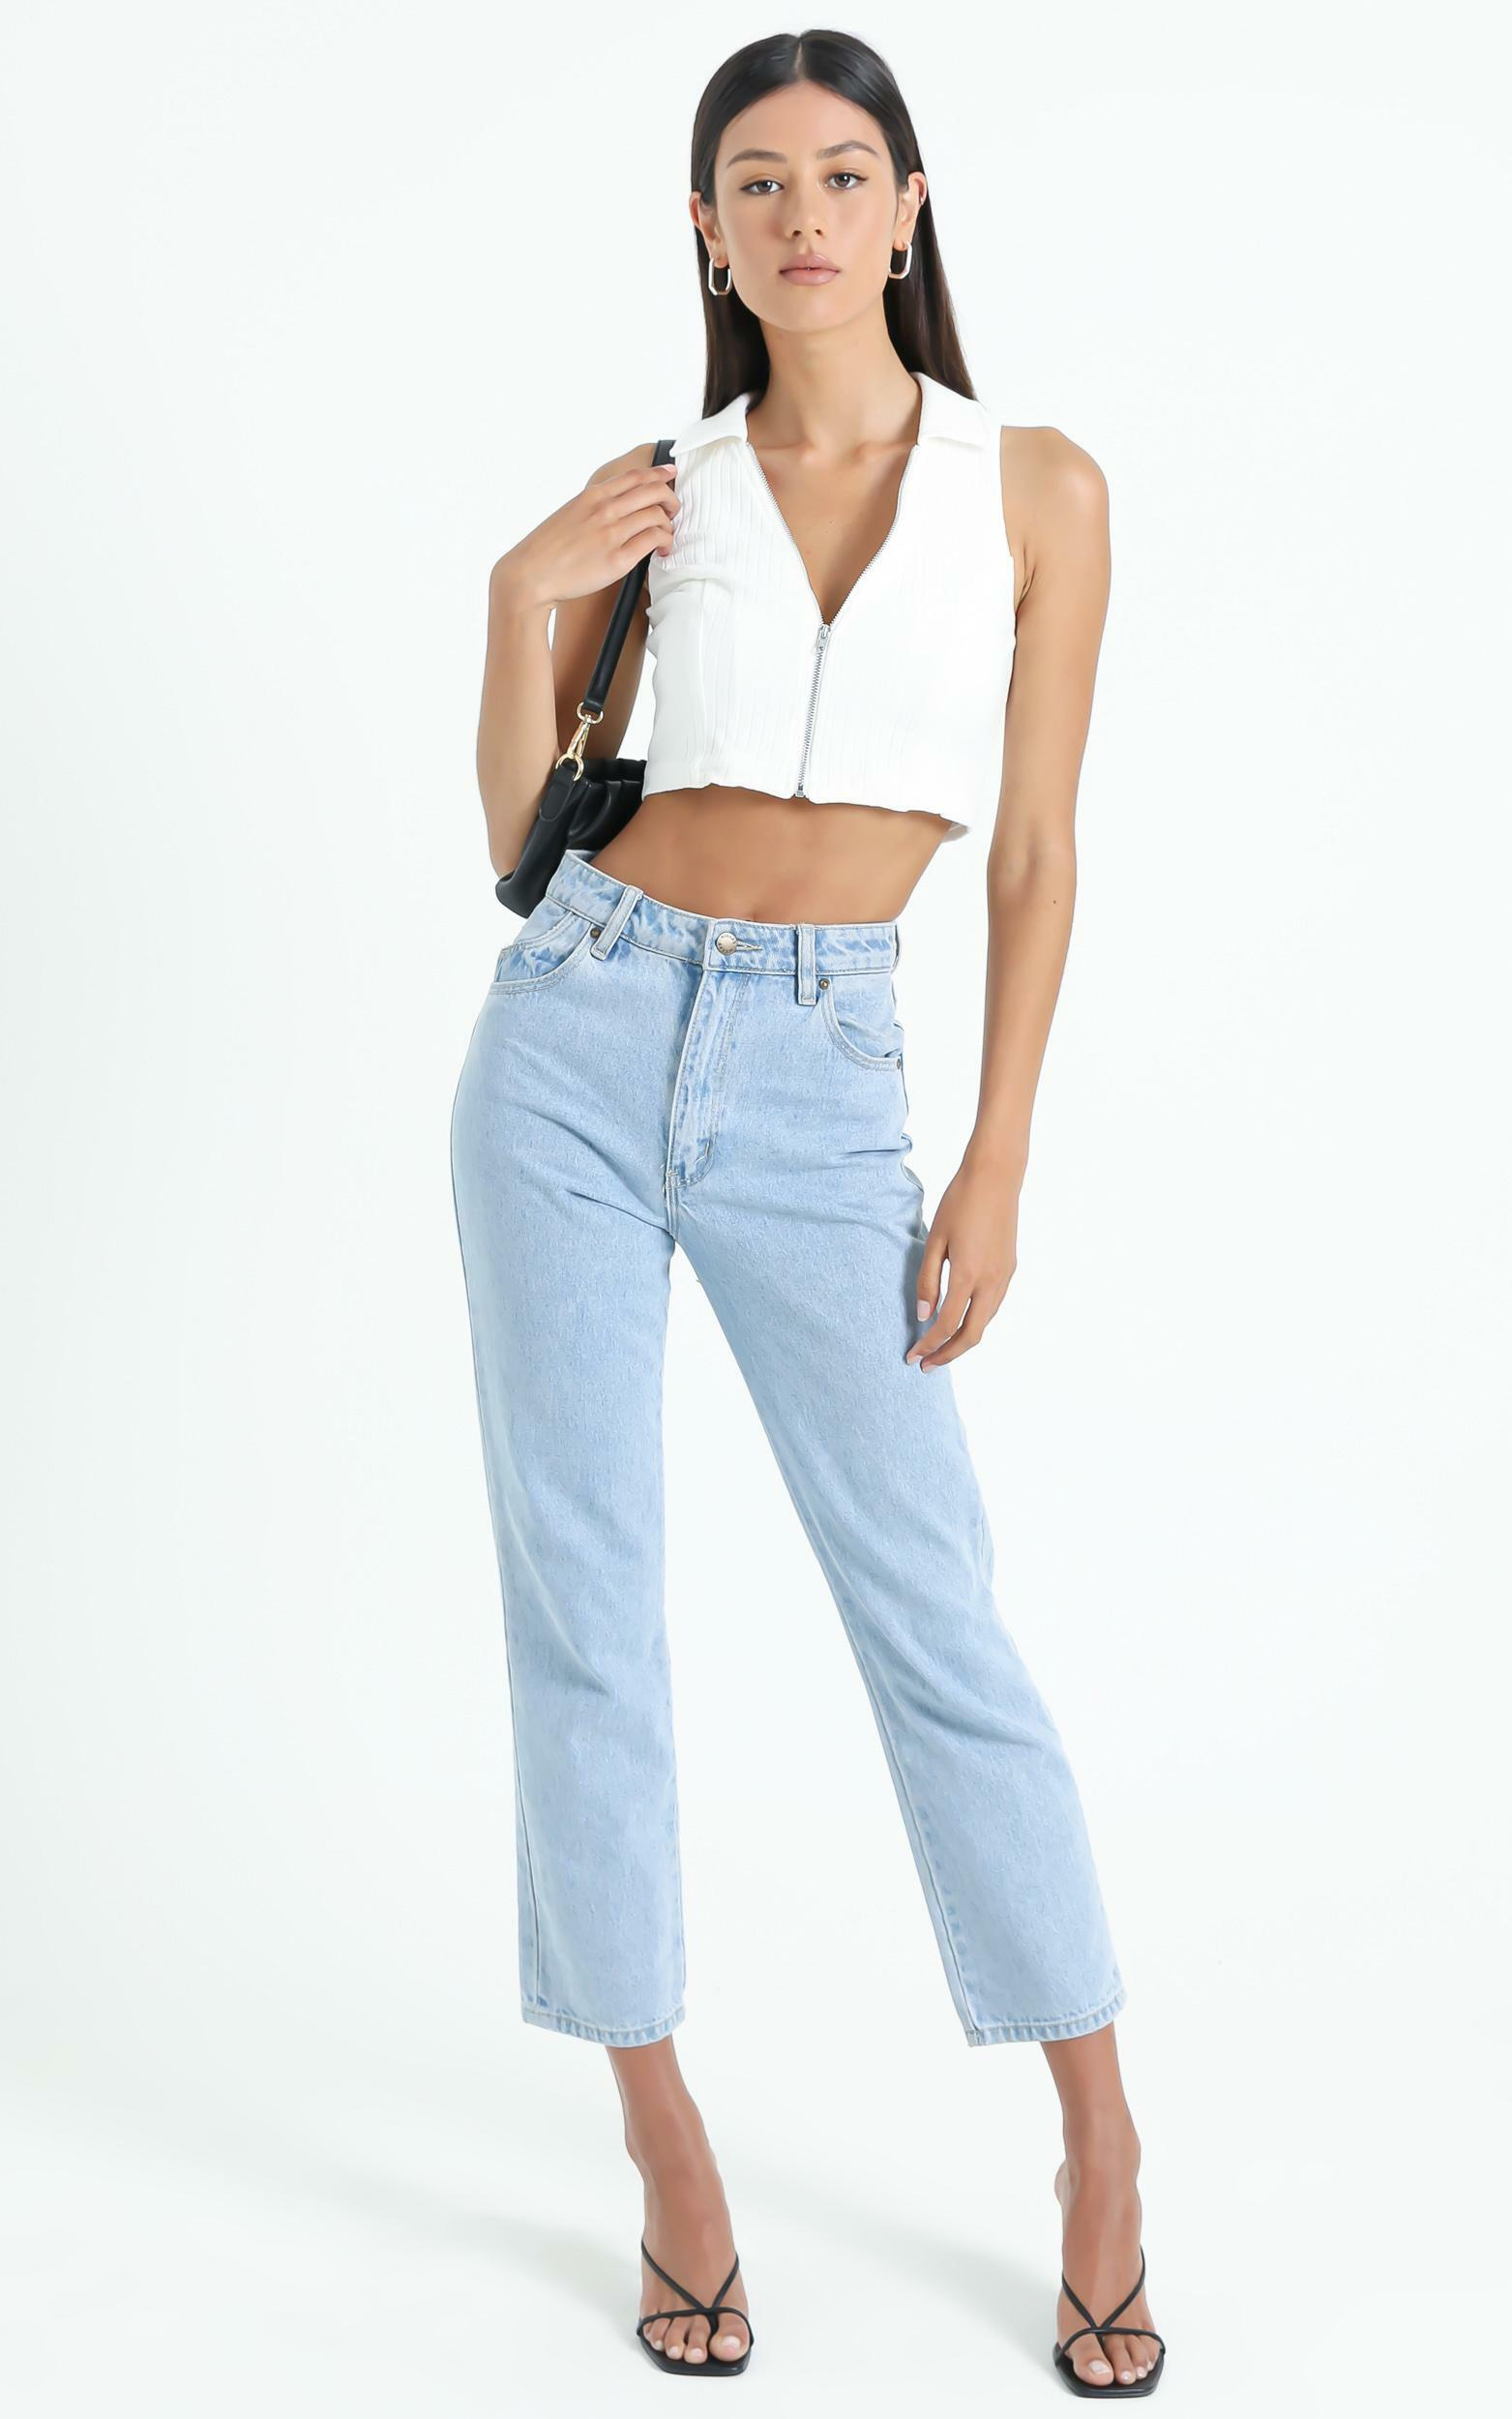 Eabha Top in White - 6 (XS), White, hi-res image number null